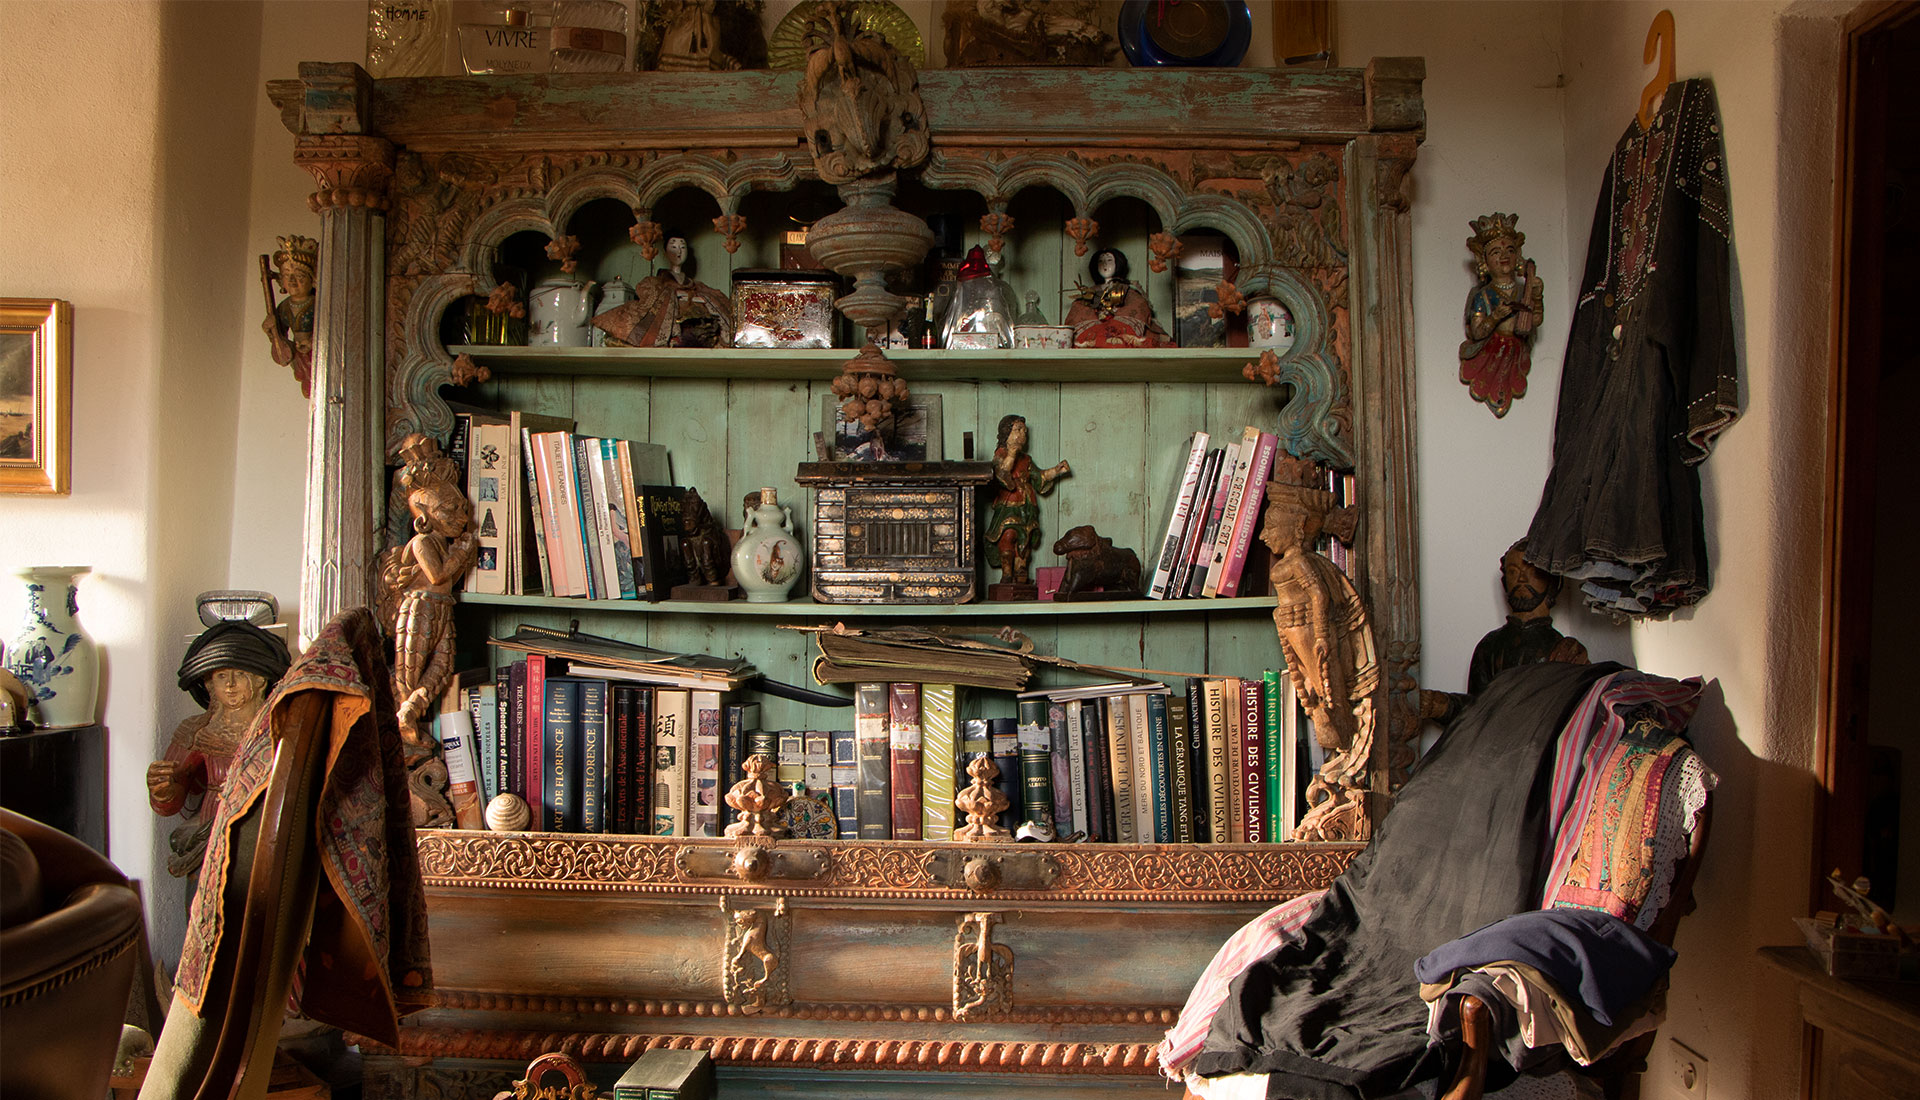 Antique Indian Library in a decorated living room